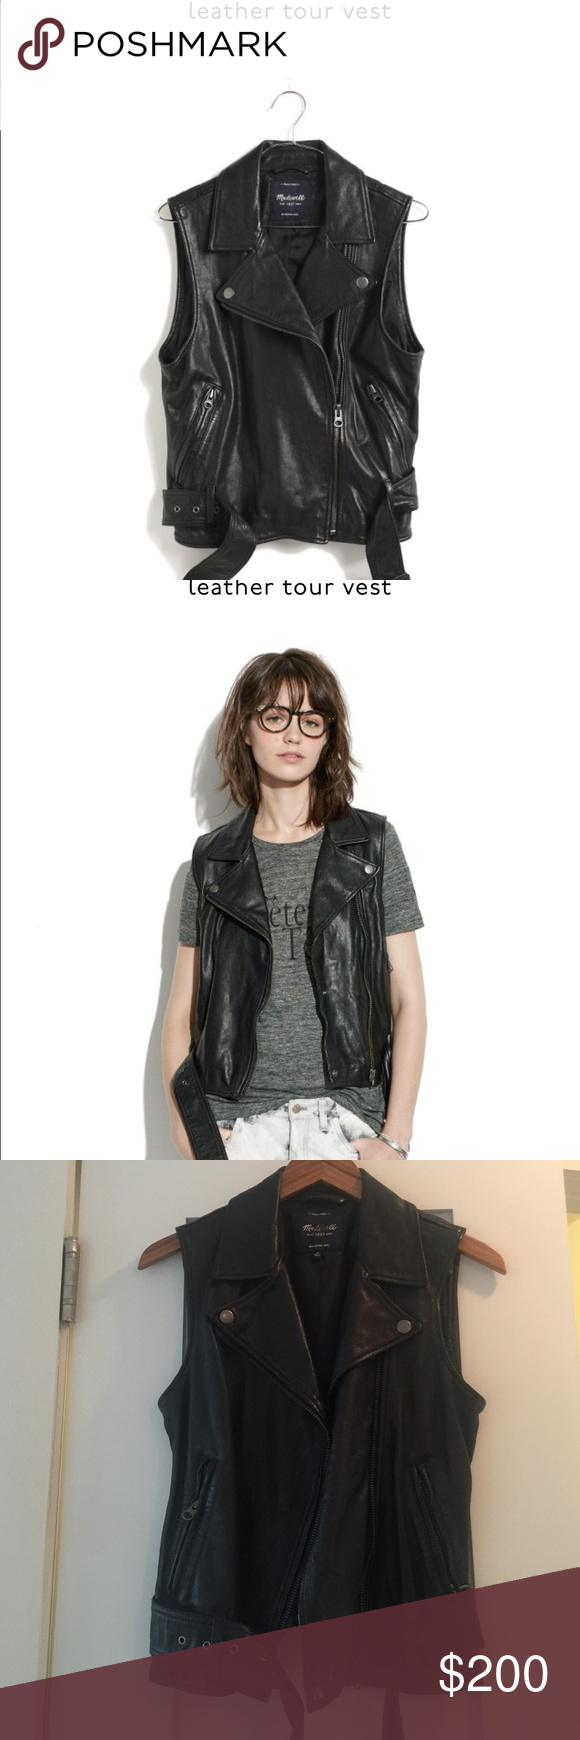 Madewell Leather Tour Vest Madewell leather, Madewell